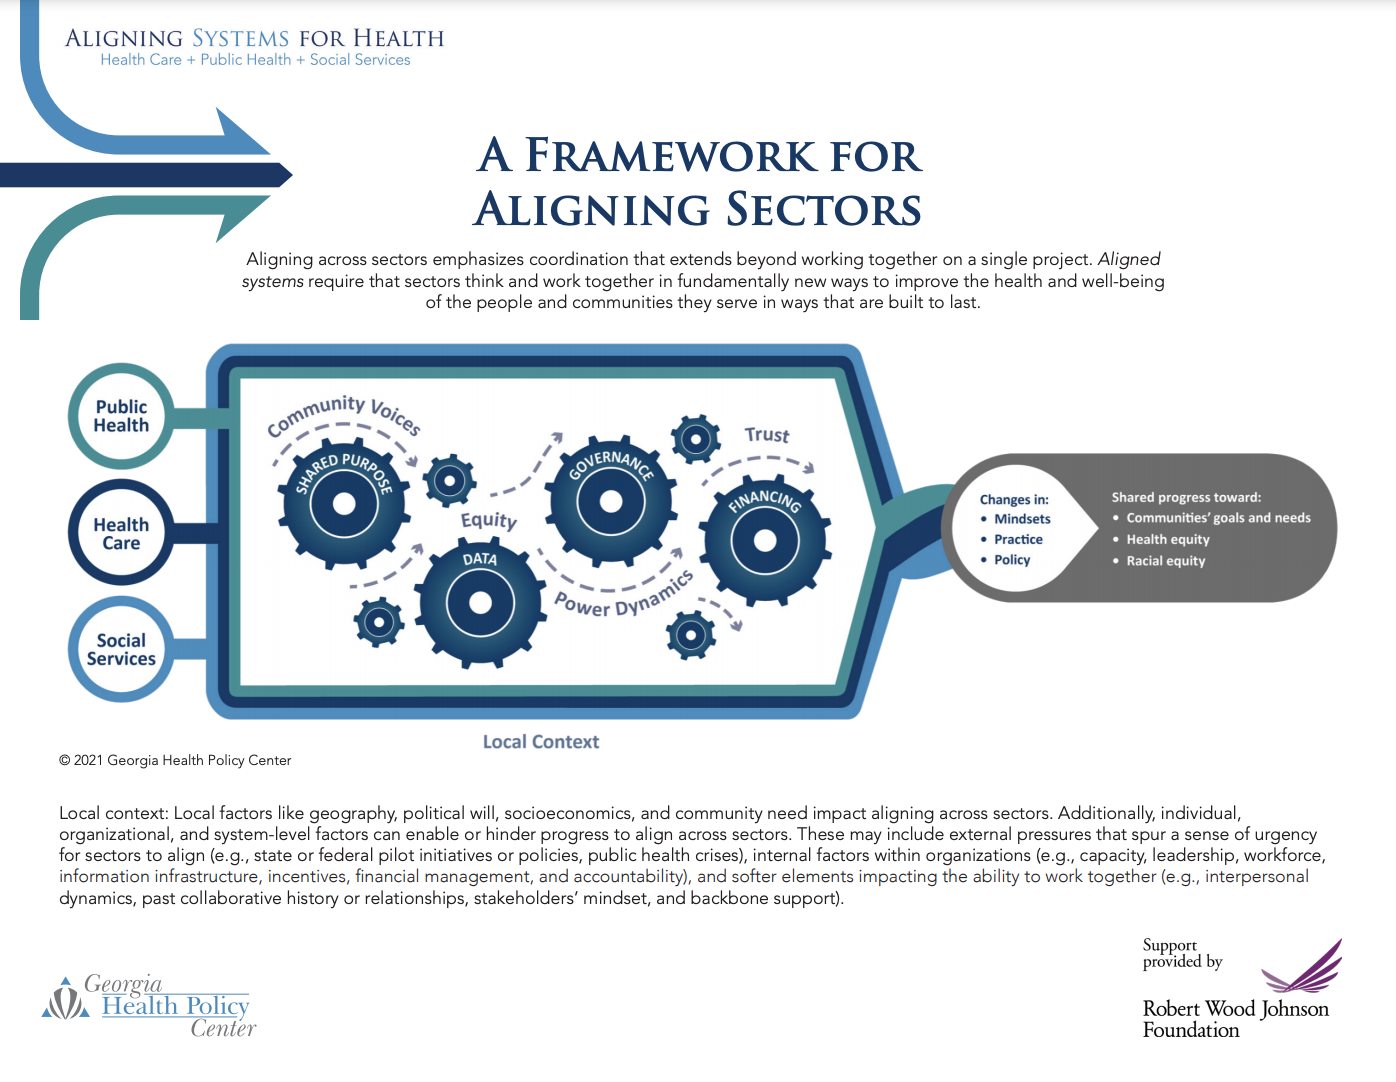 Framework for Aligning Sectors With Glossary